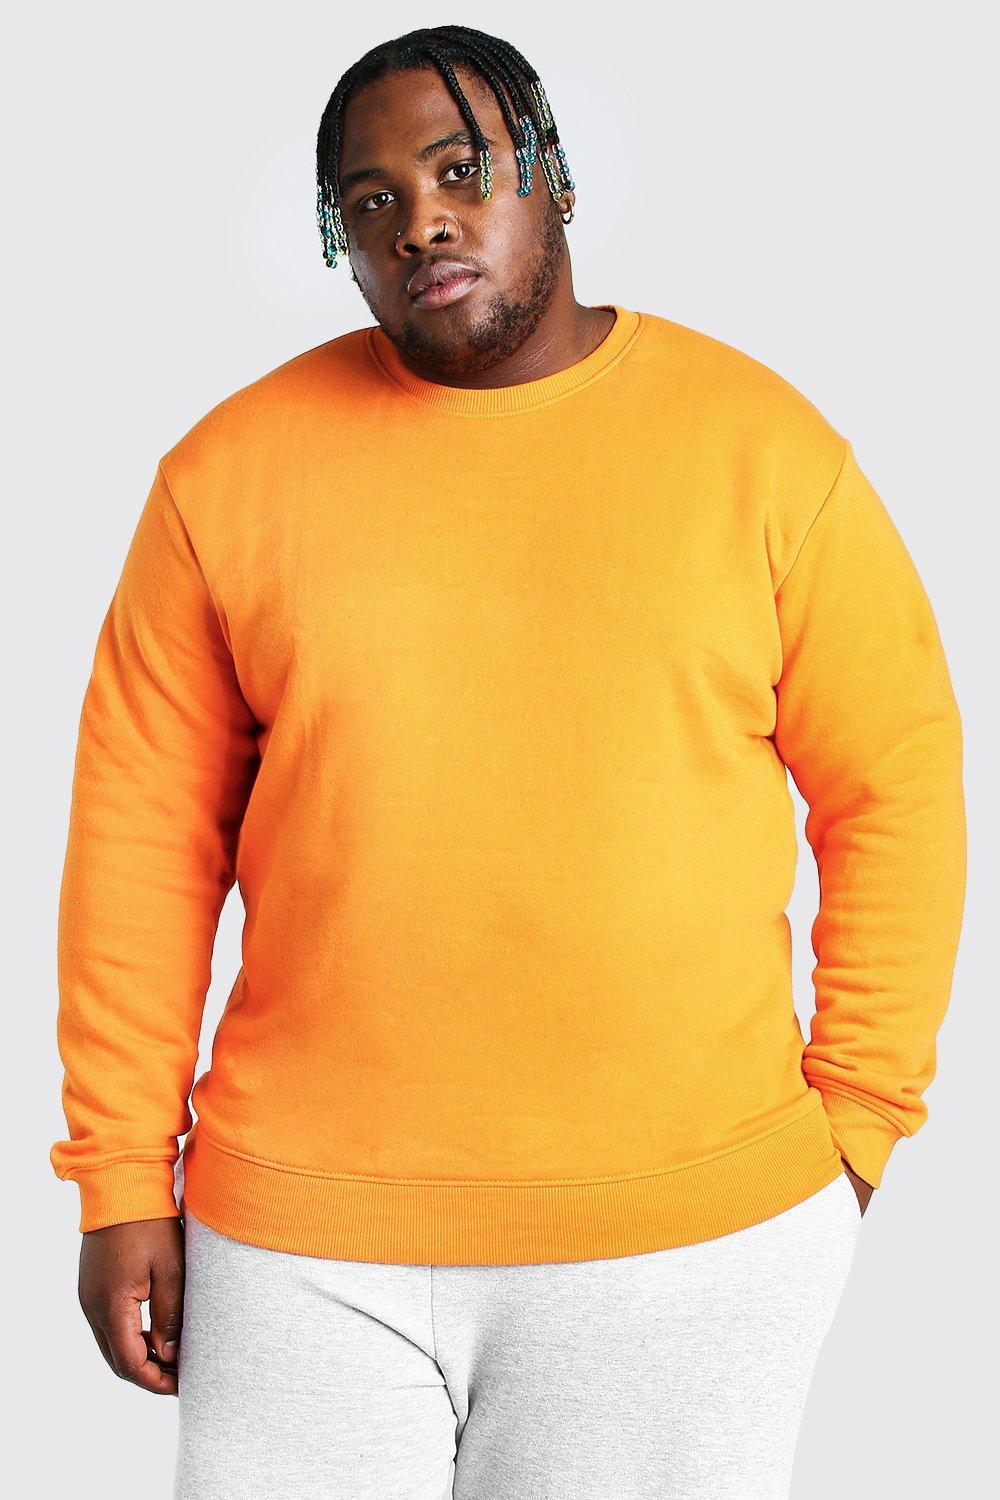 mens plus size basic sweater - orange